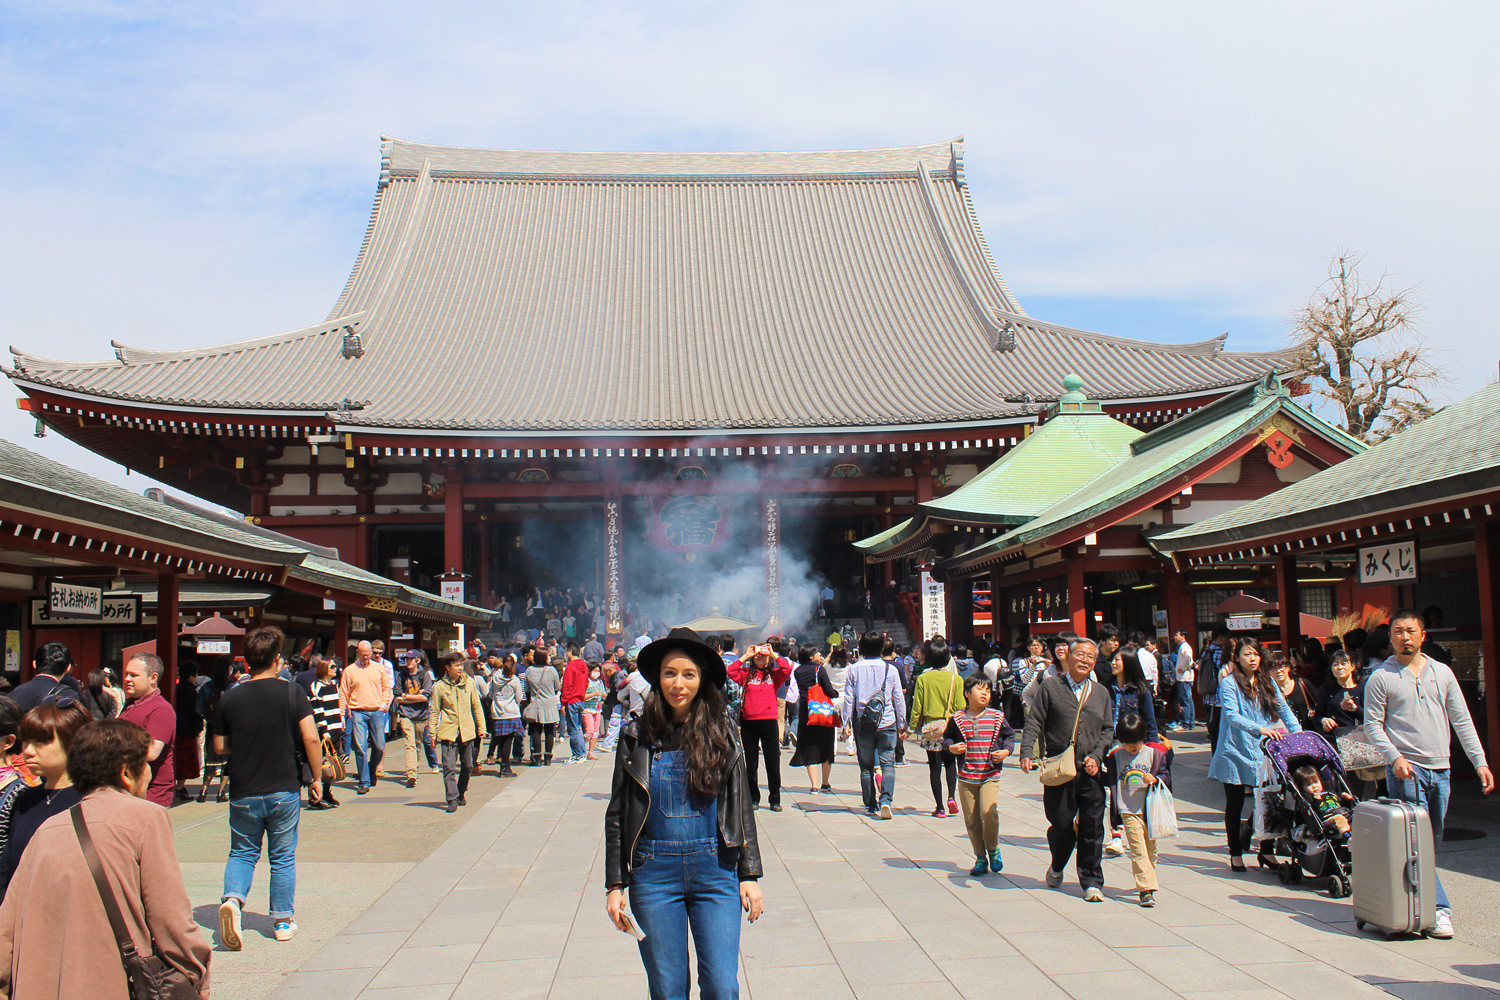 Plan Your First Trip To Japan: Travel Guide & Itinerary